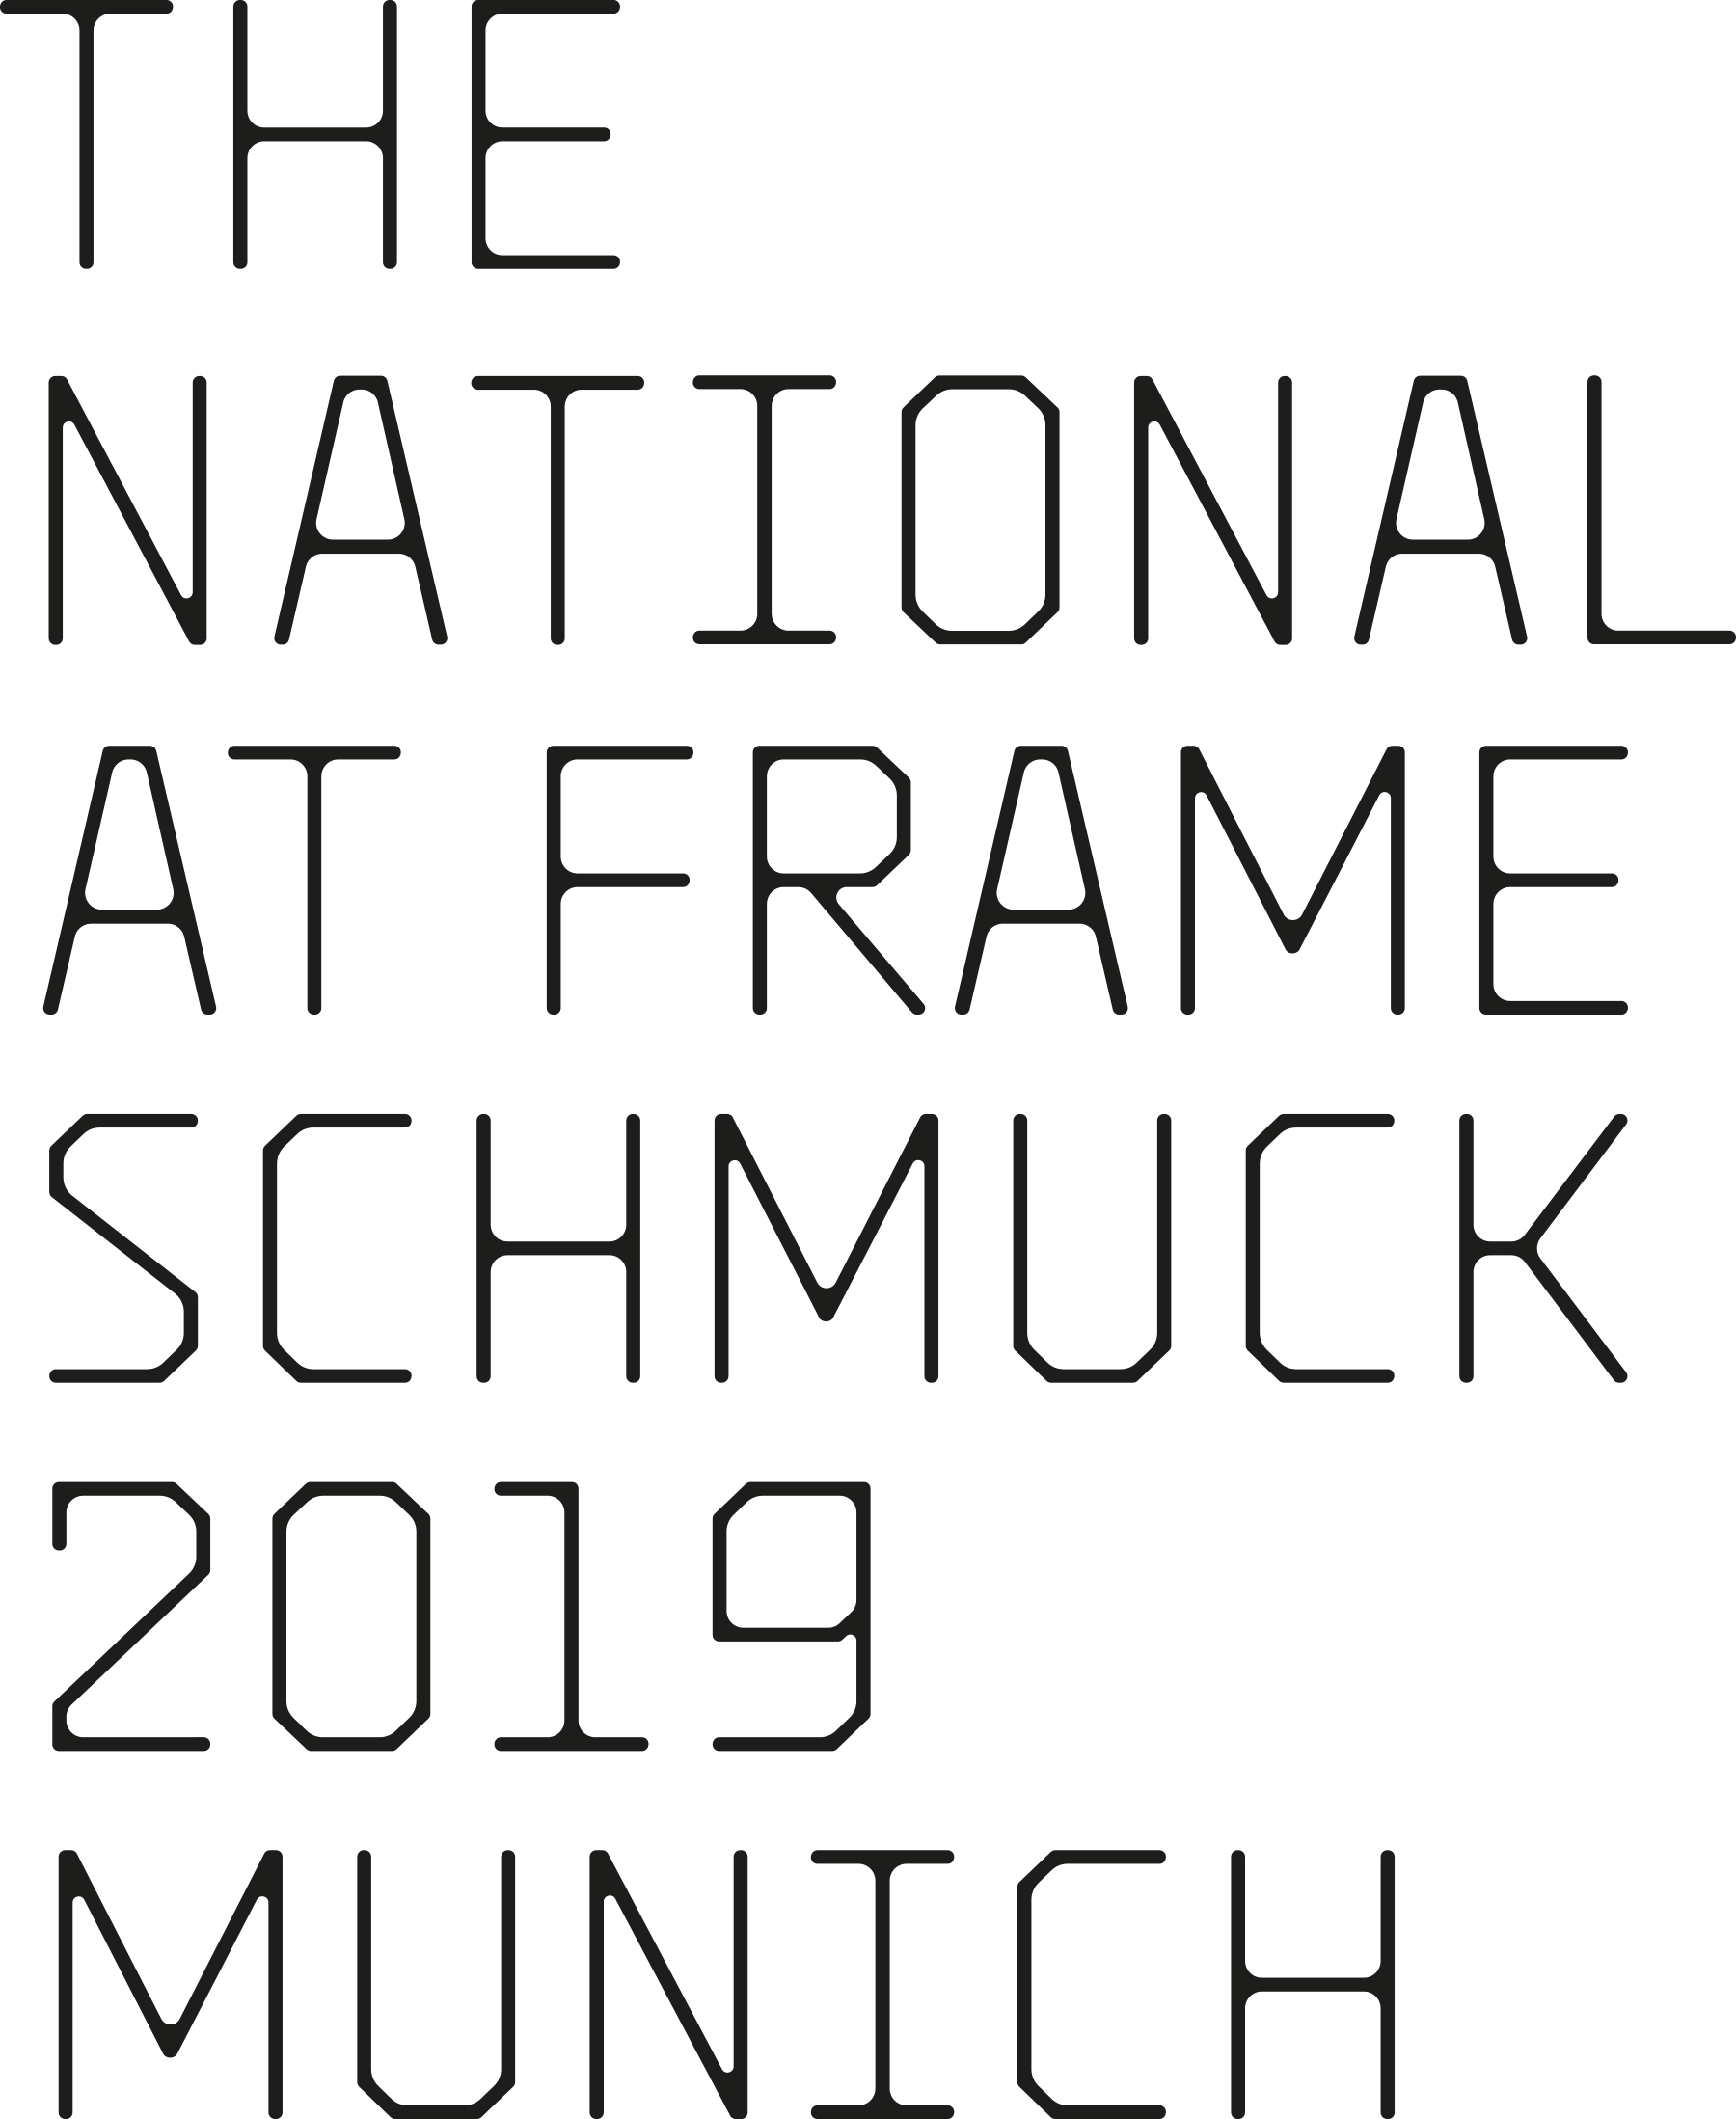 The National at Frame Schmuck 2019 Munich